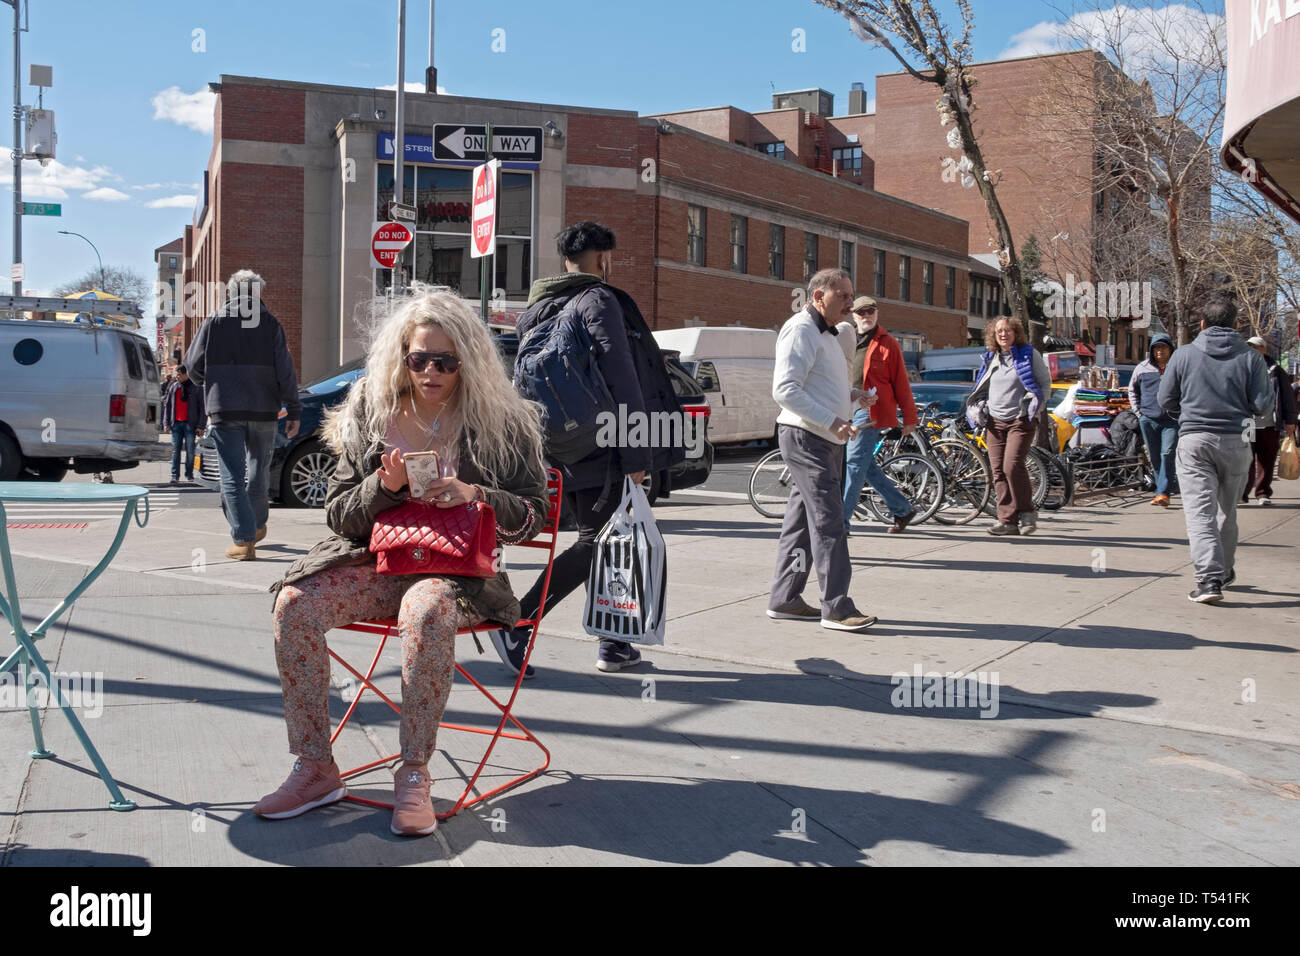 A street scene featuring a seated woman with long blond hair texting on her cell phone. In Jackson Heights, Queens, New York City. Stock Photo